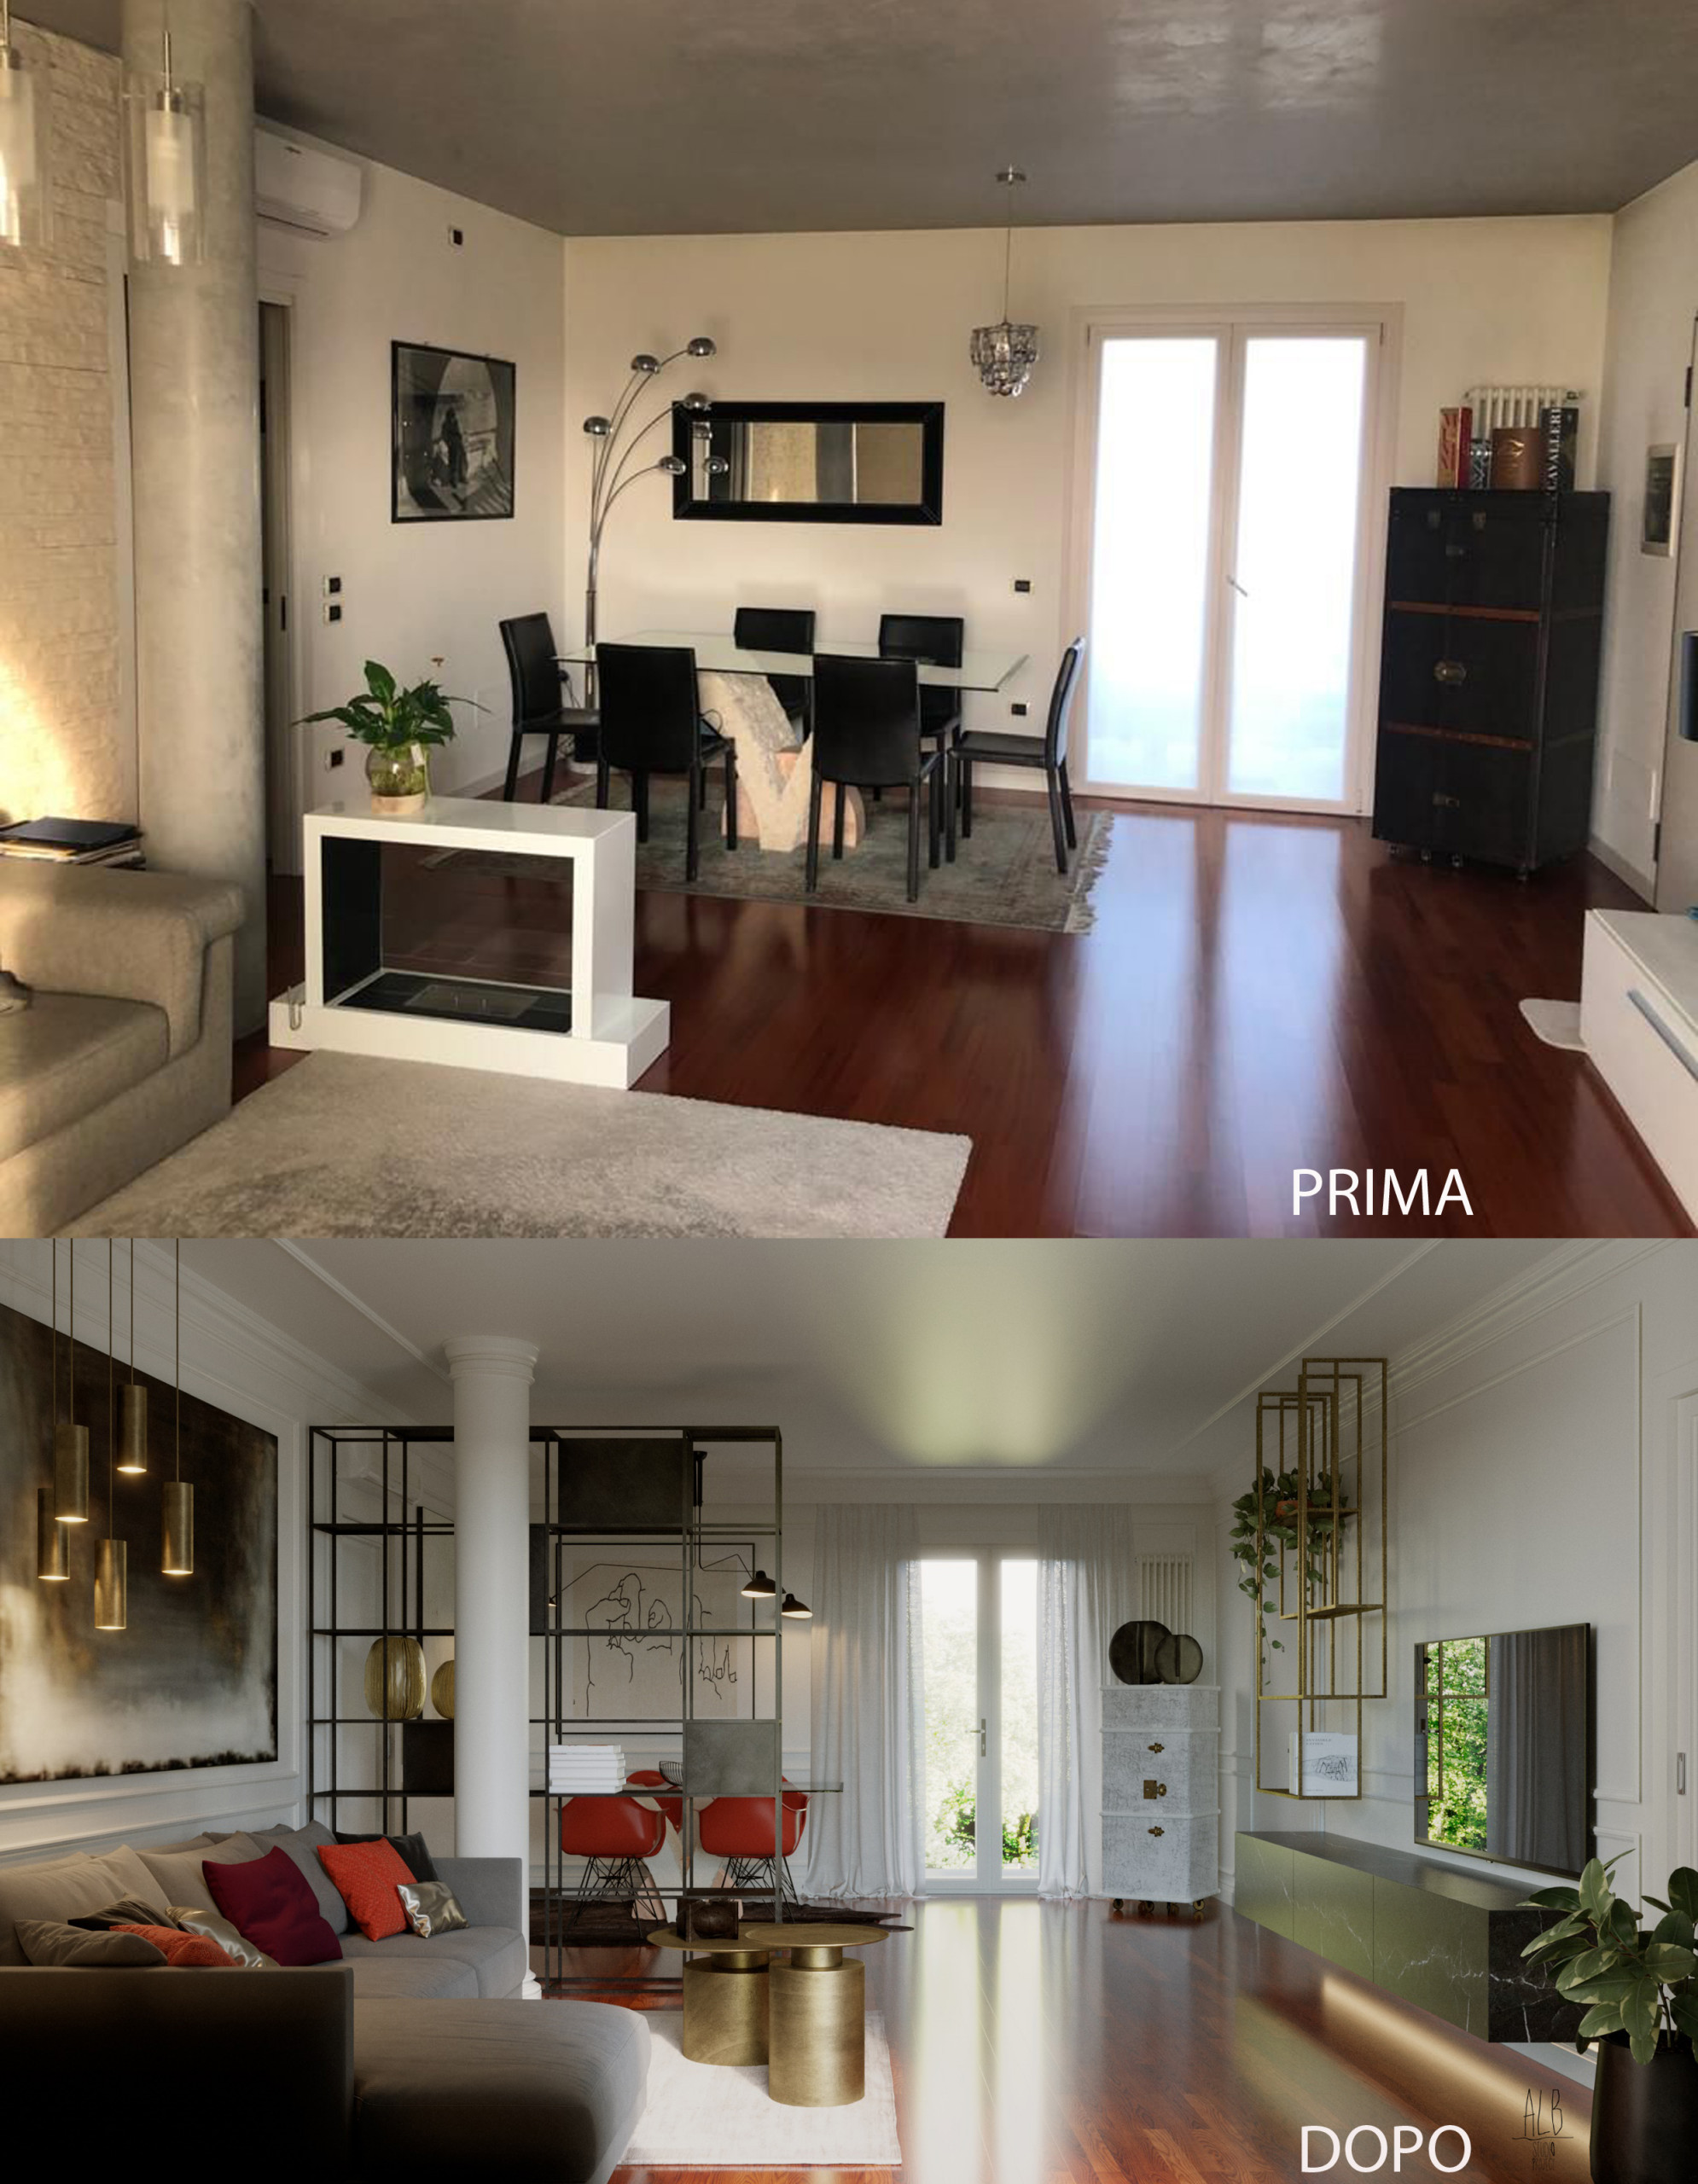 QUINTO DI TV - RESTYLING AREA LIVING